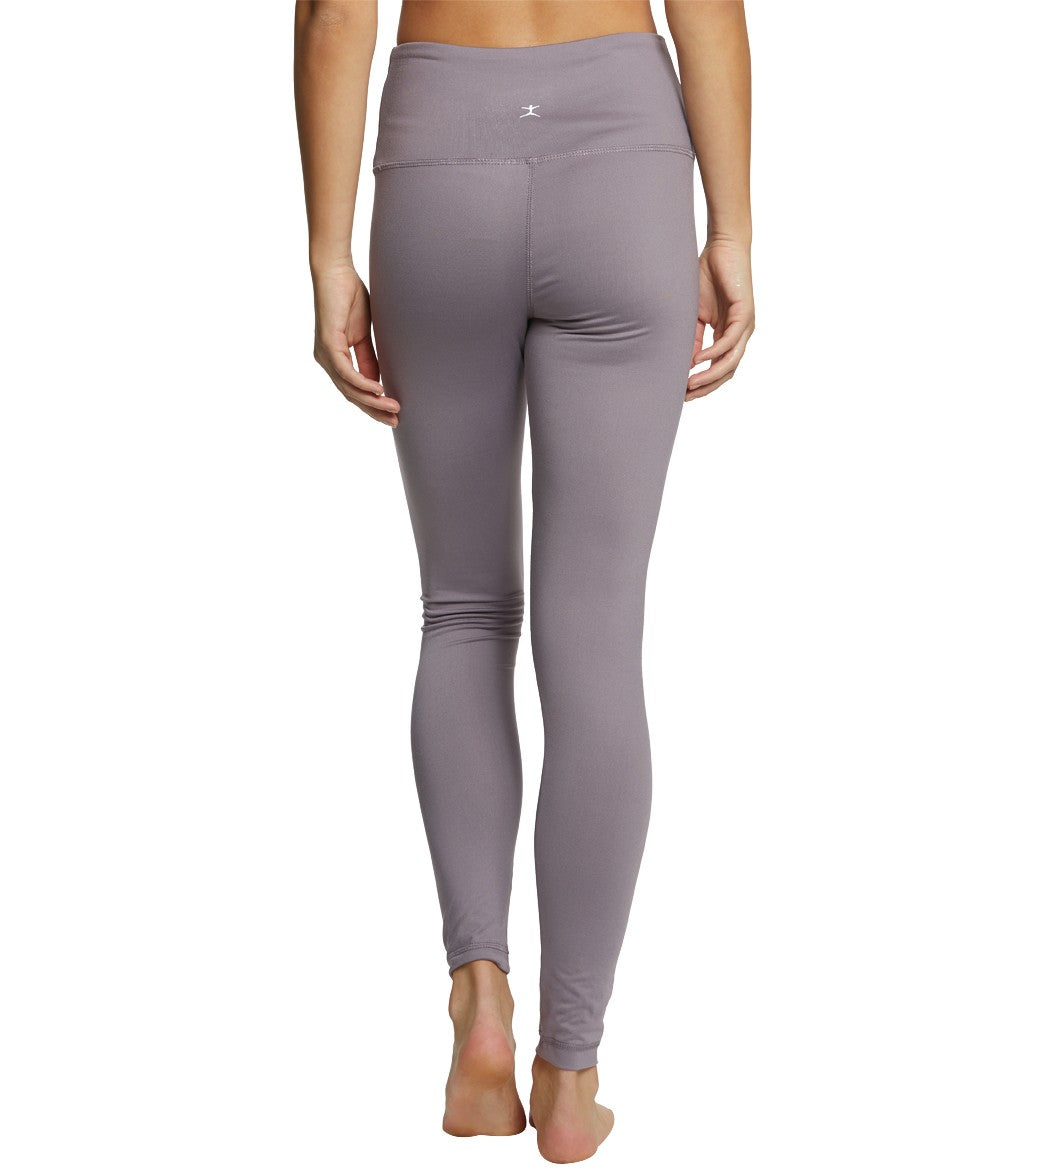 aaa360c5e87215 Danskin High Waisted Ankle Leggings at YogaOutlet.com